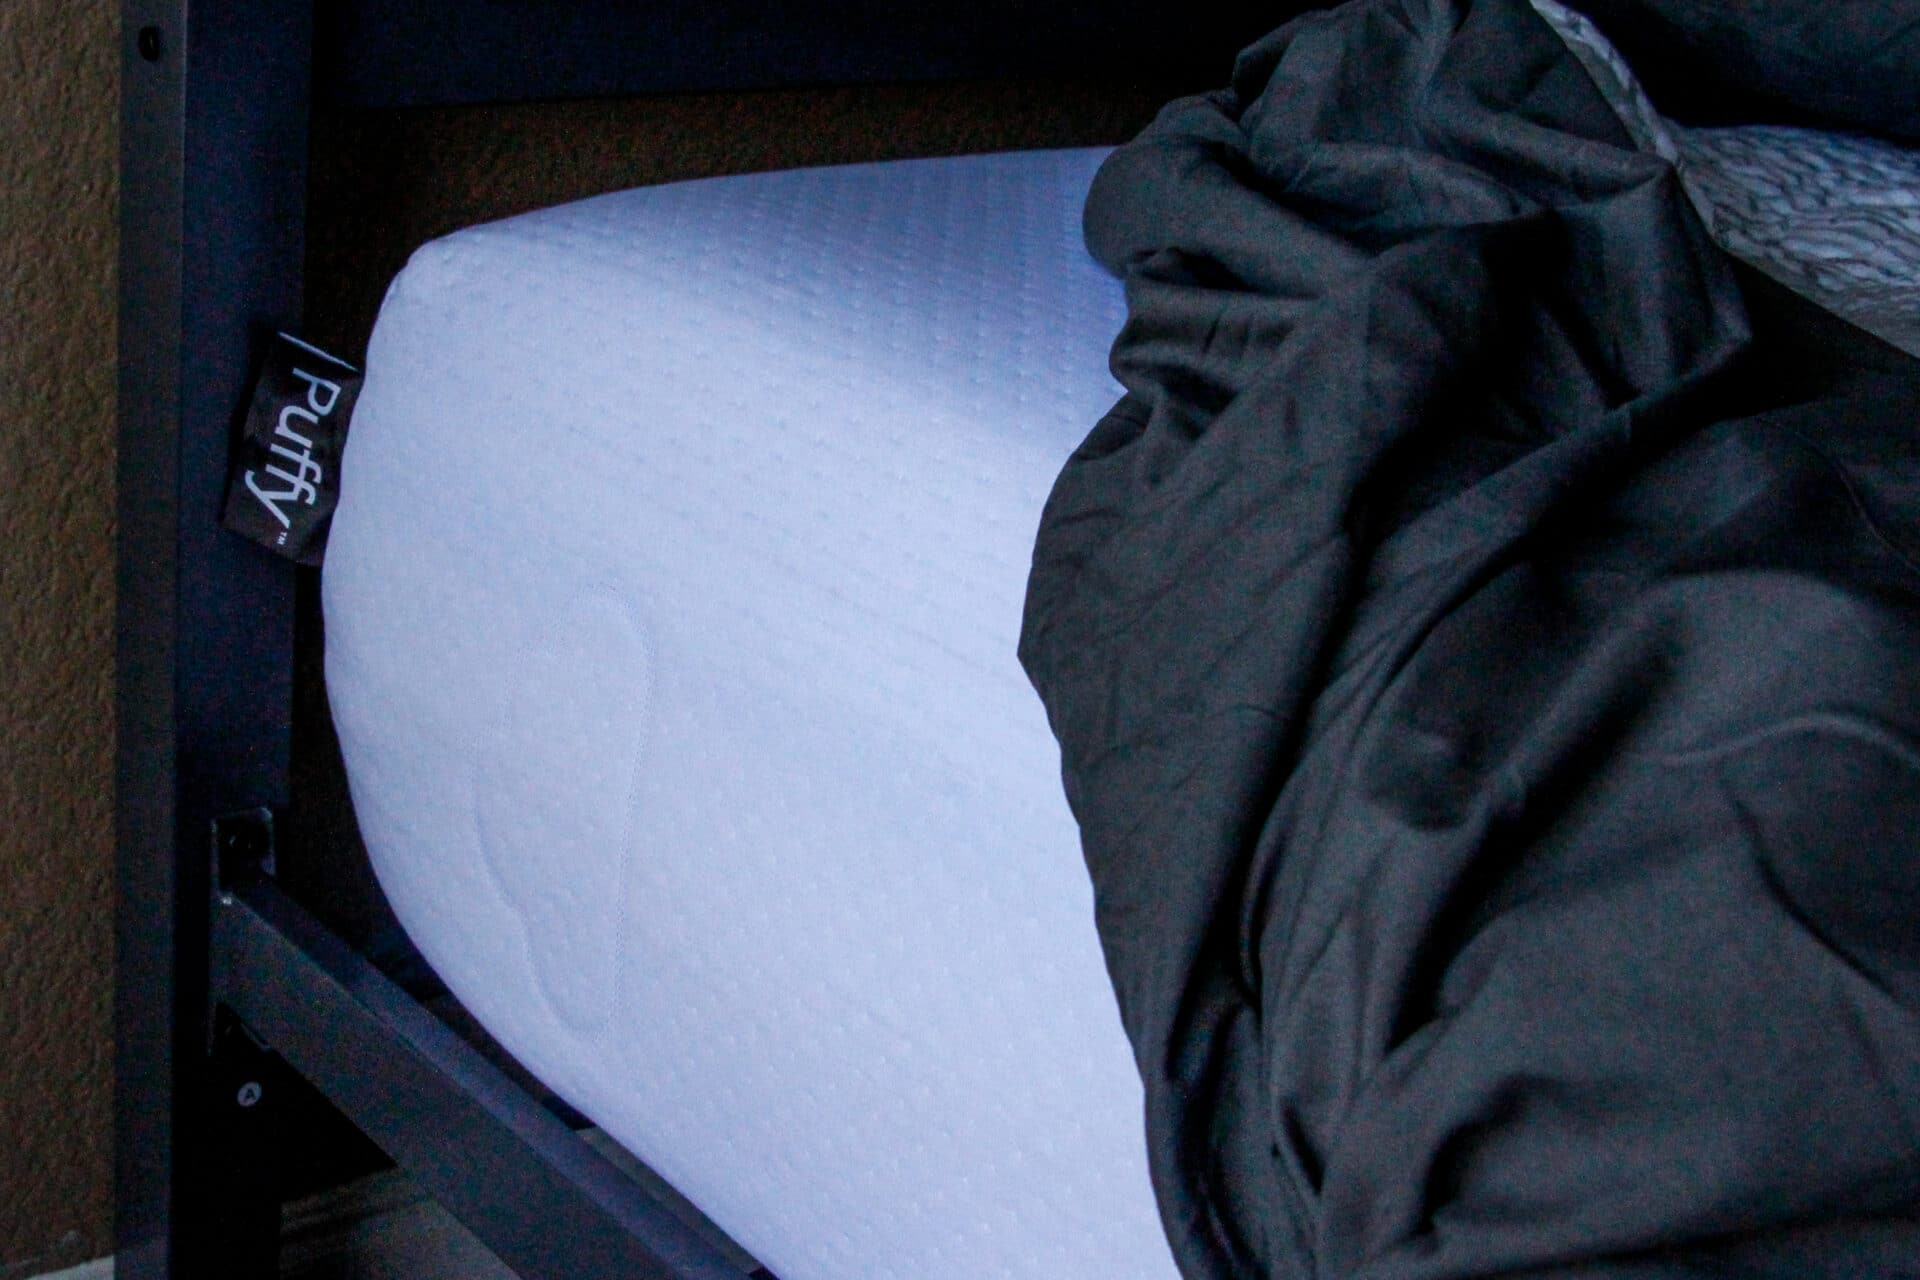 Buying the Best Mattress for the Best Sleep Ever